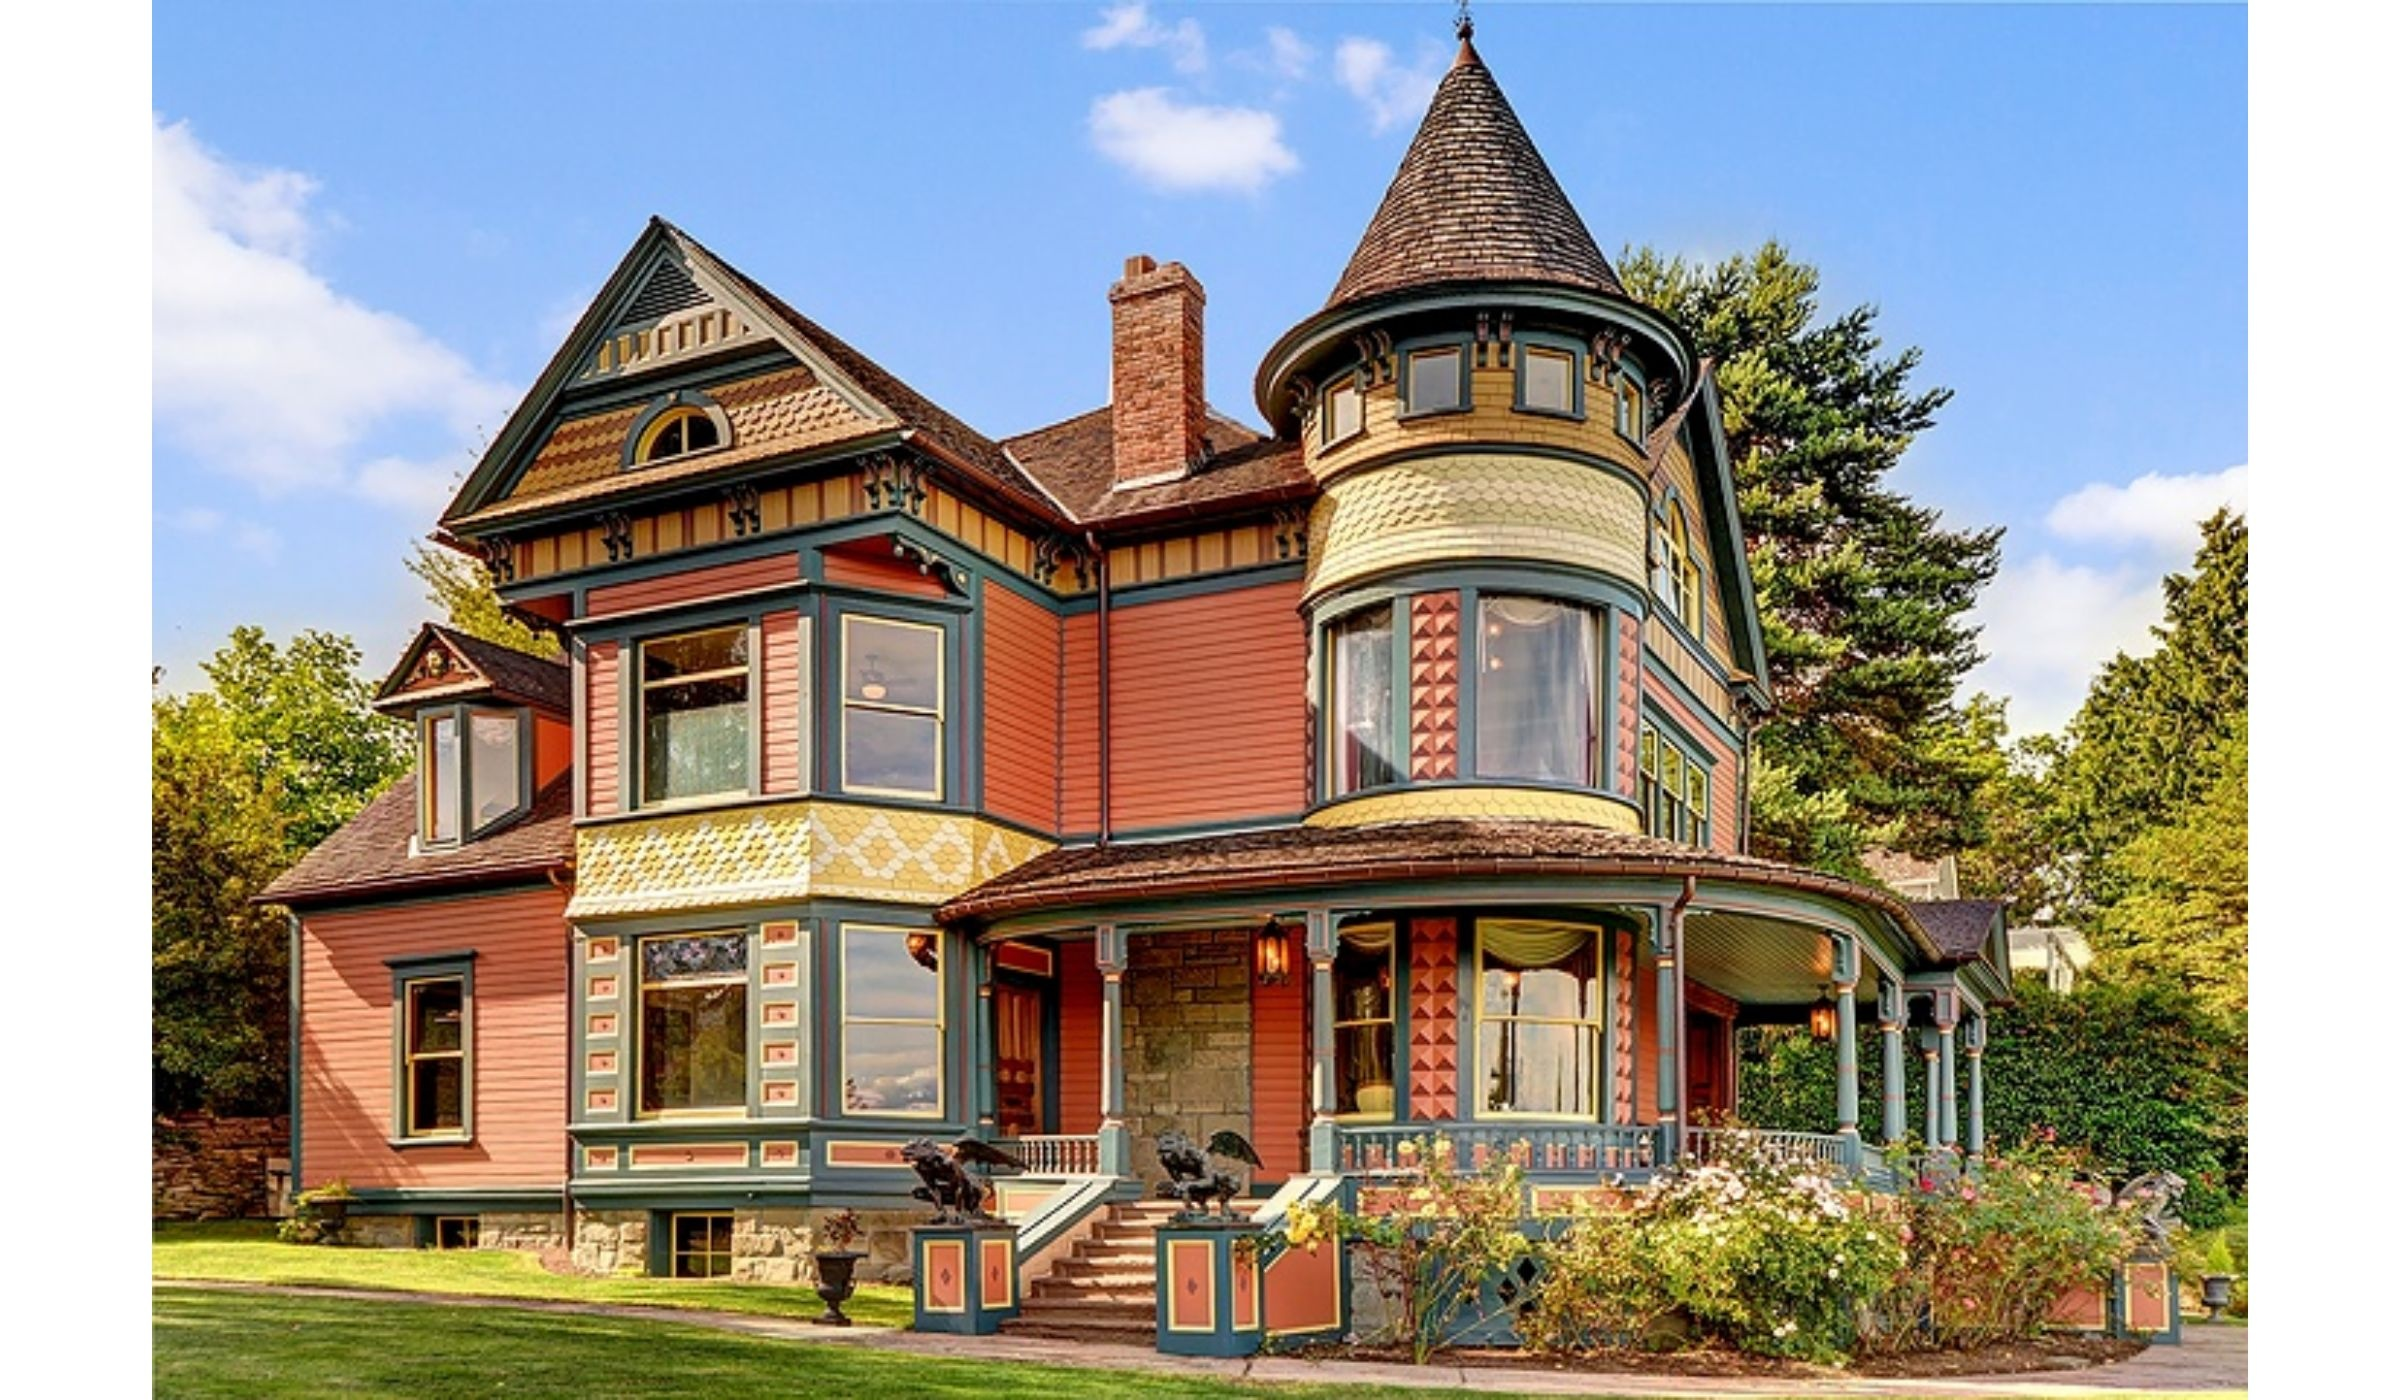 House Of The Week A Queen Anne With Views Mount Rainier